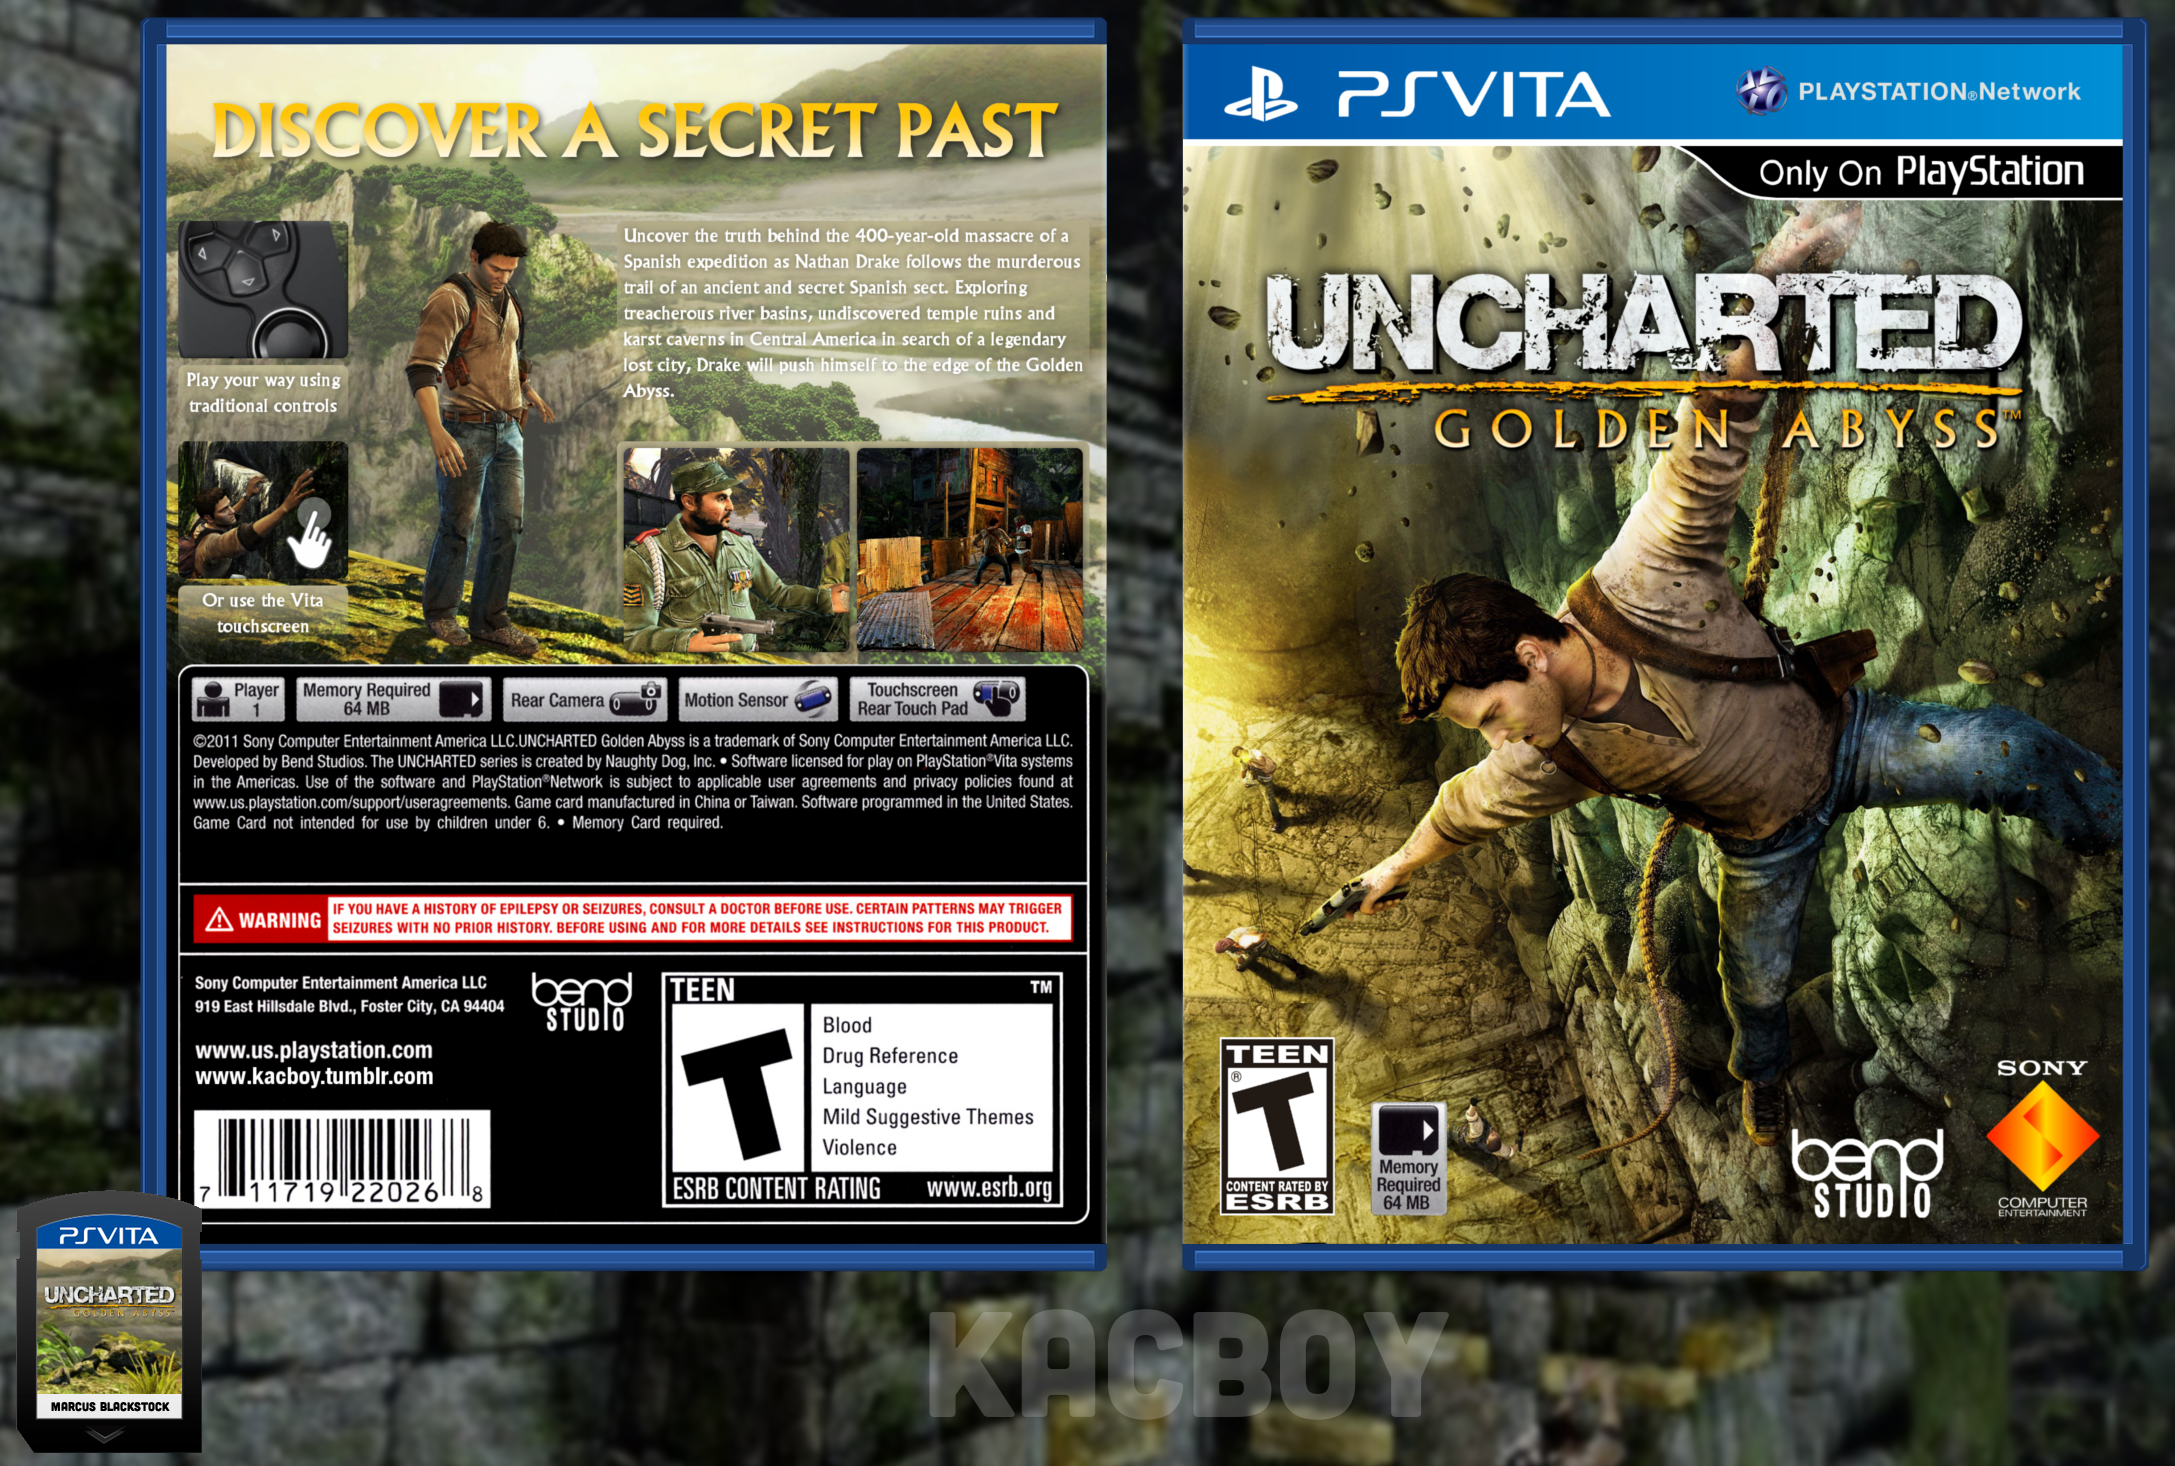 Uncharted: Golden Abyss box cover